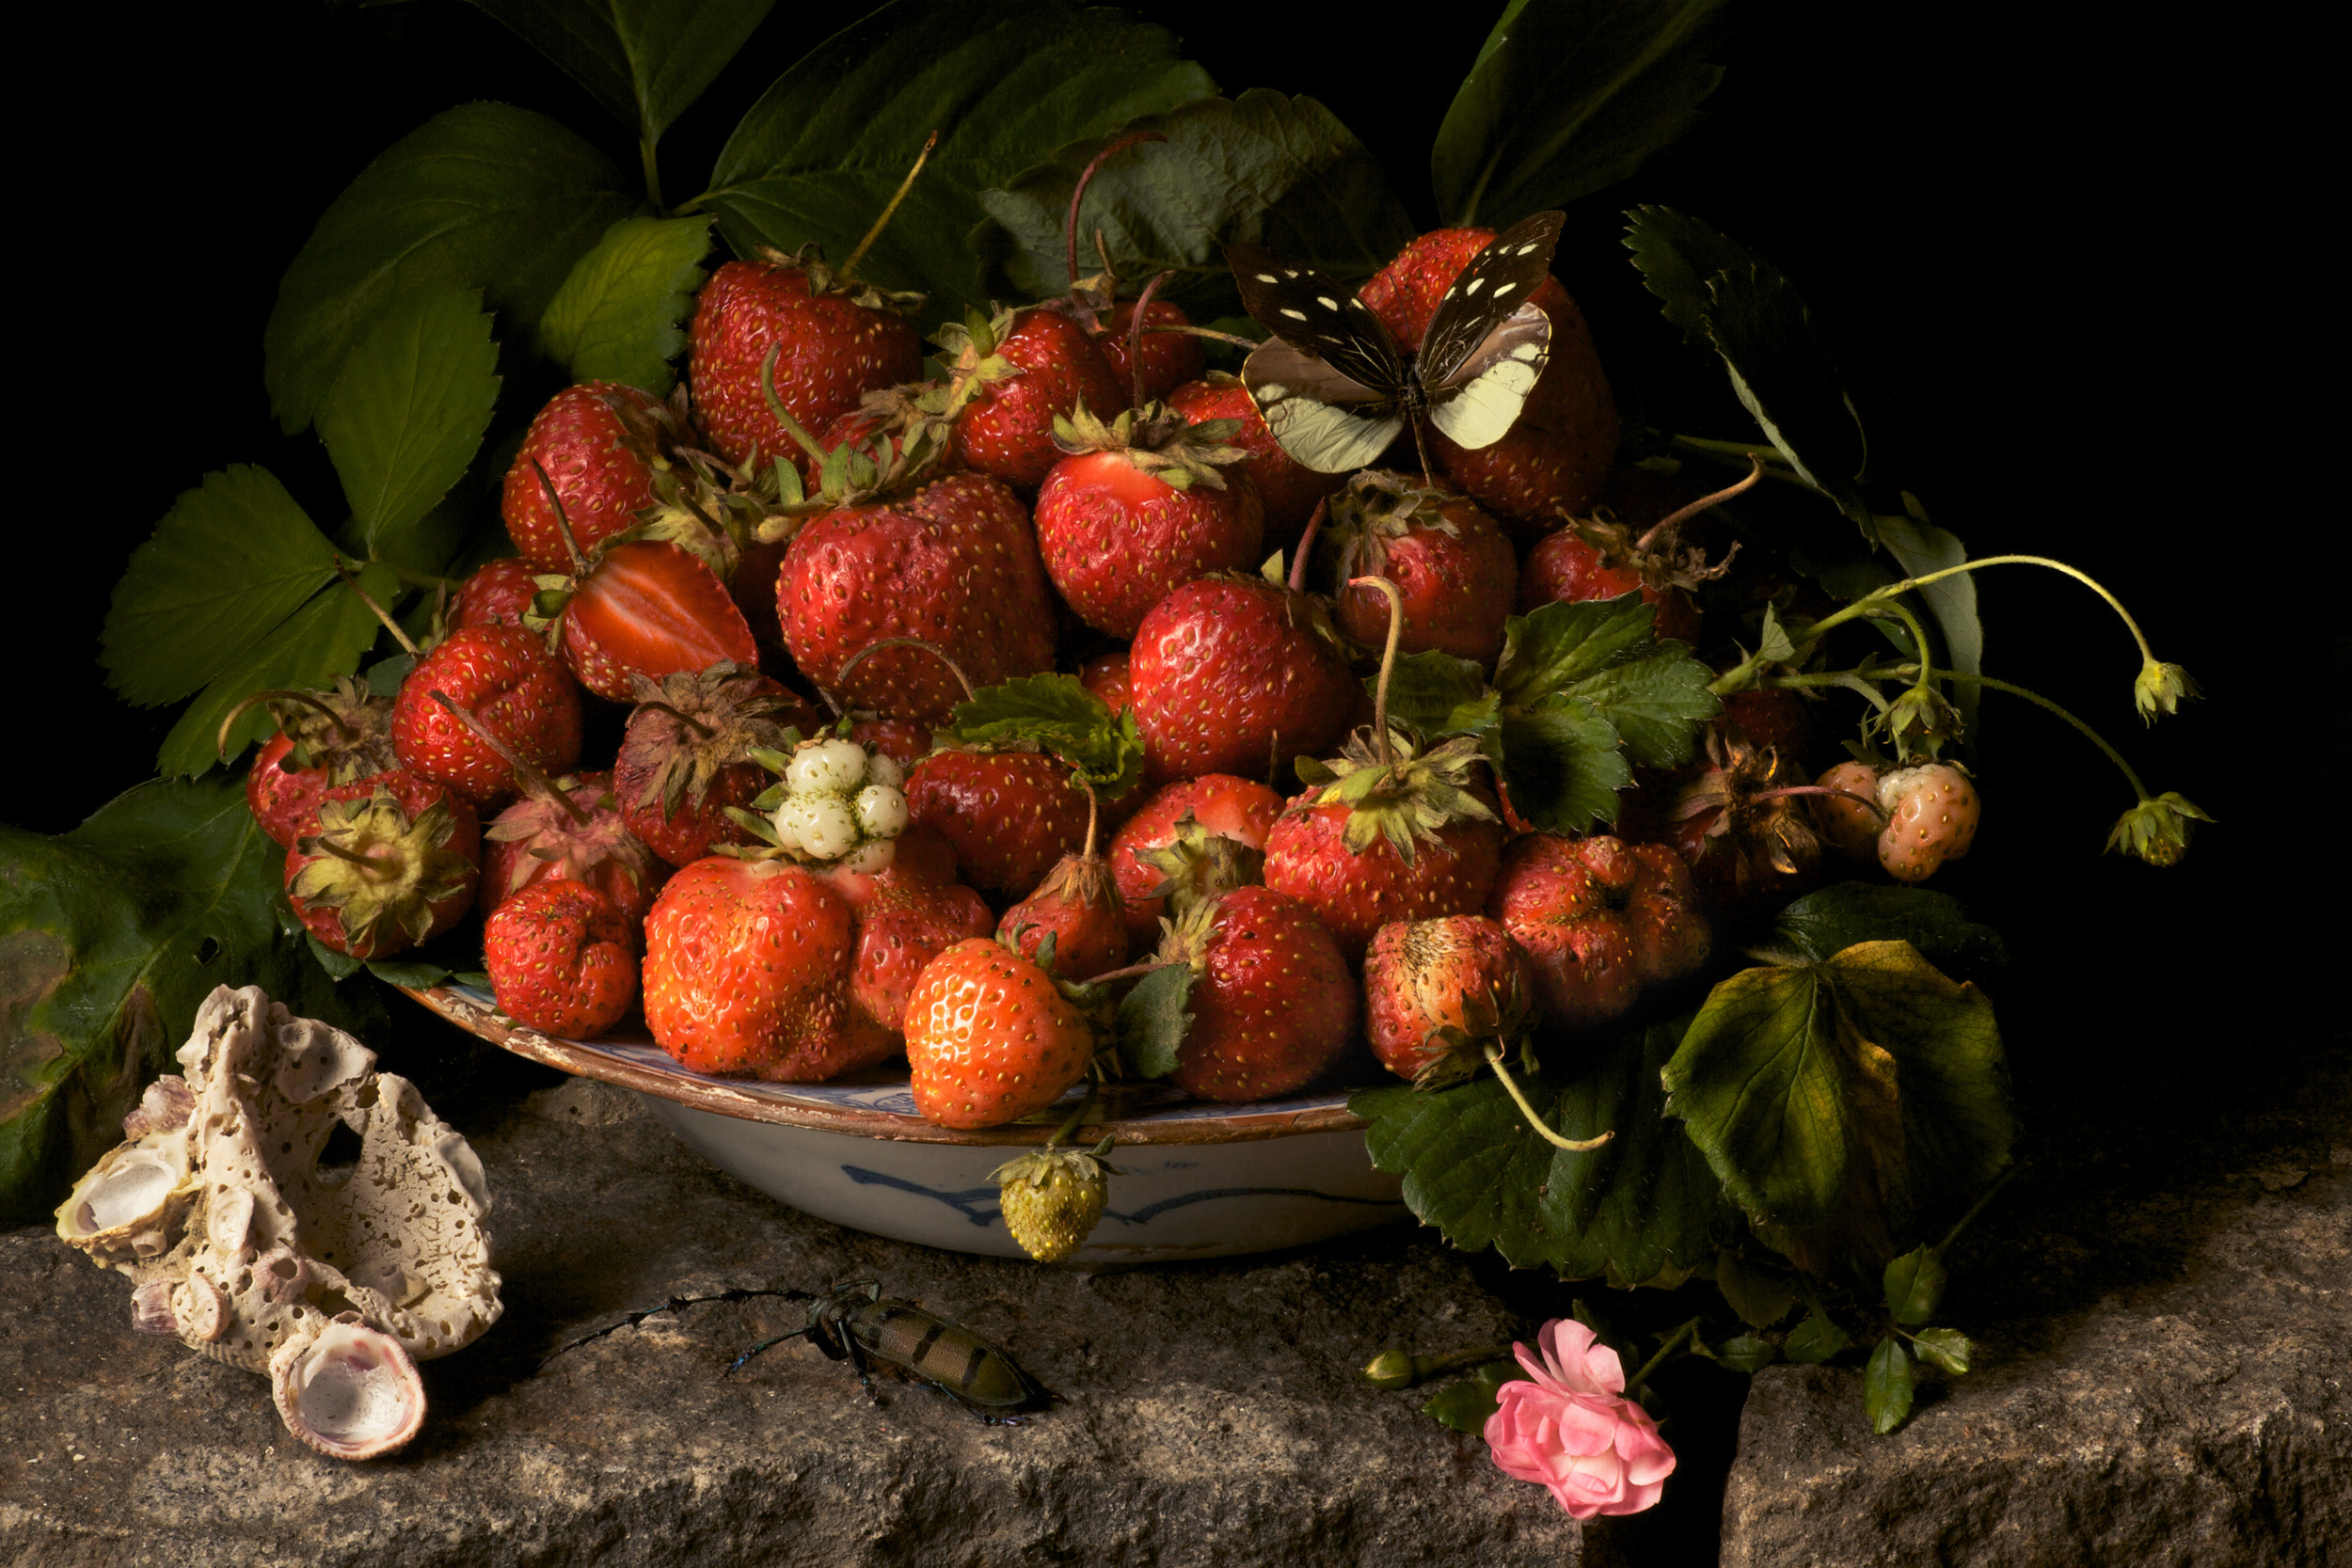 Strawberries, 2009